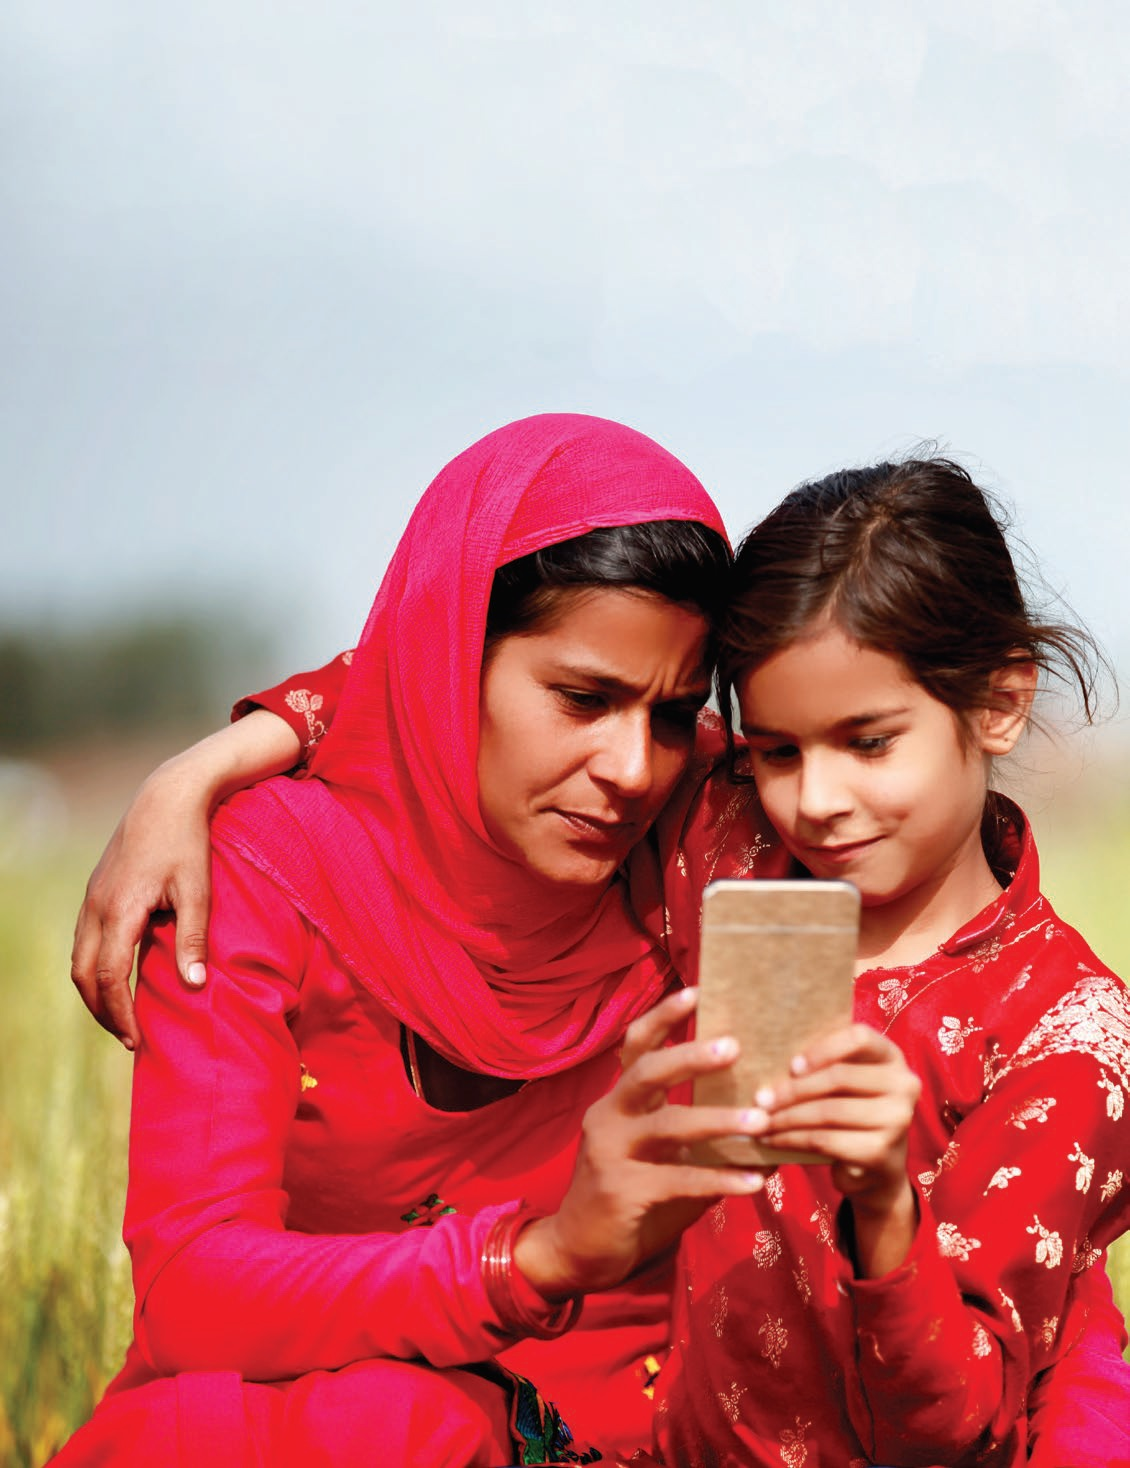 10 reasons to be optimistic that financial inclusion is possible through digital payments